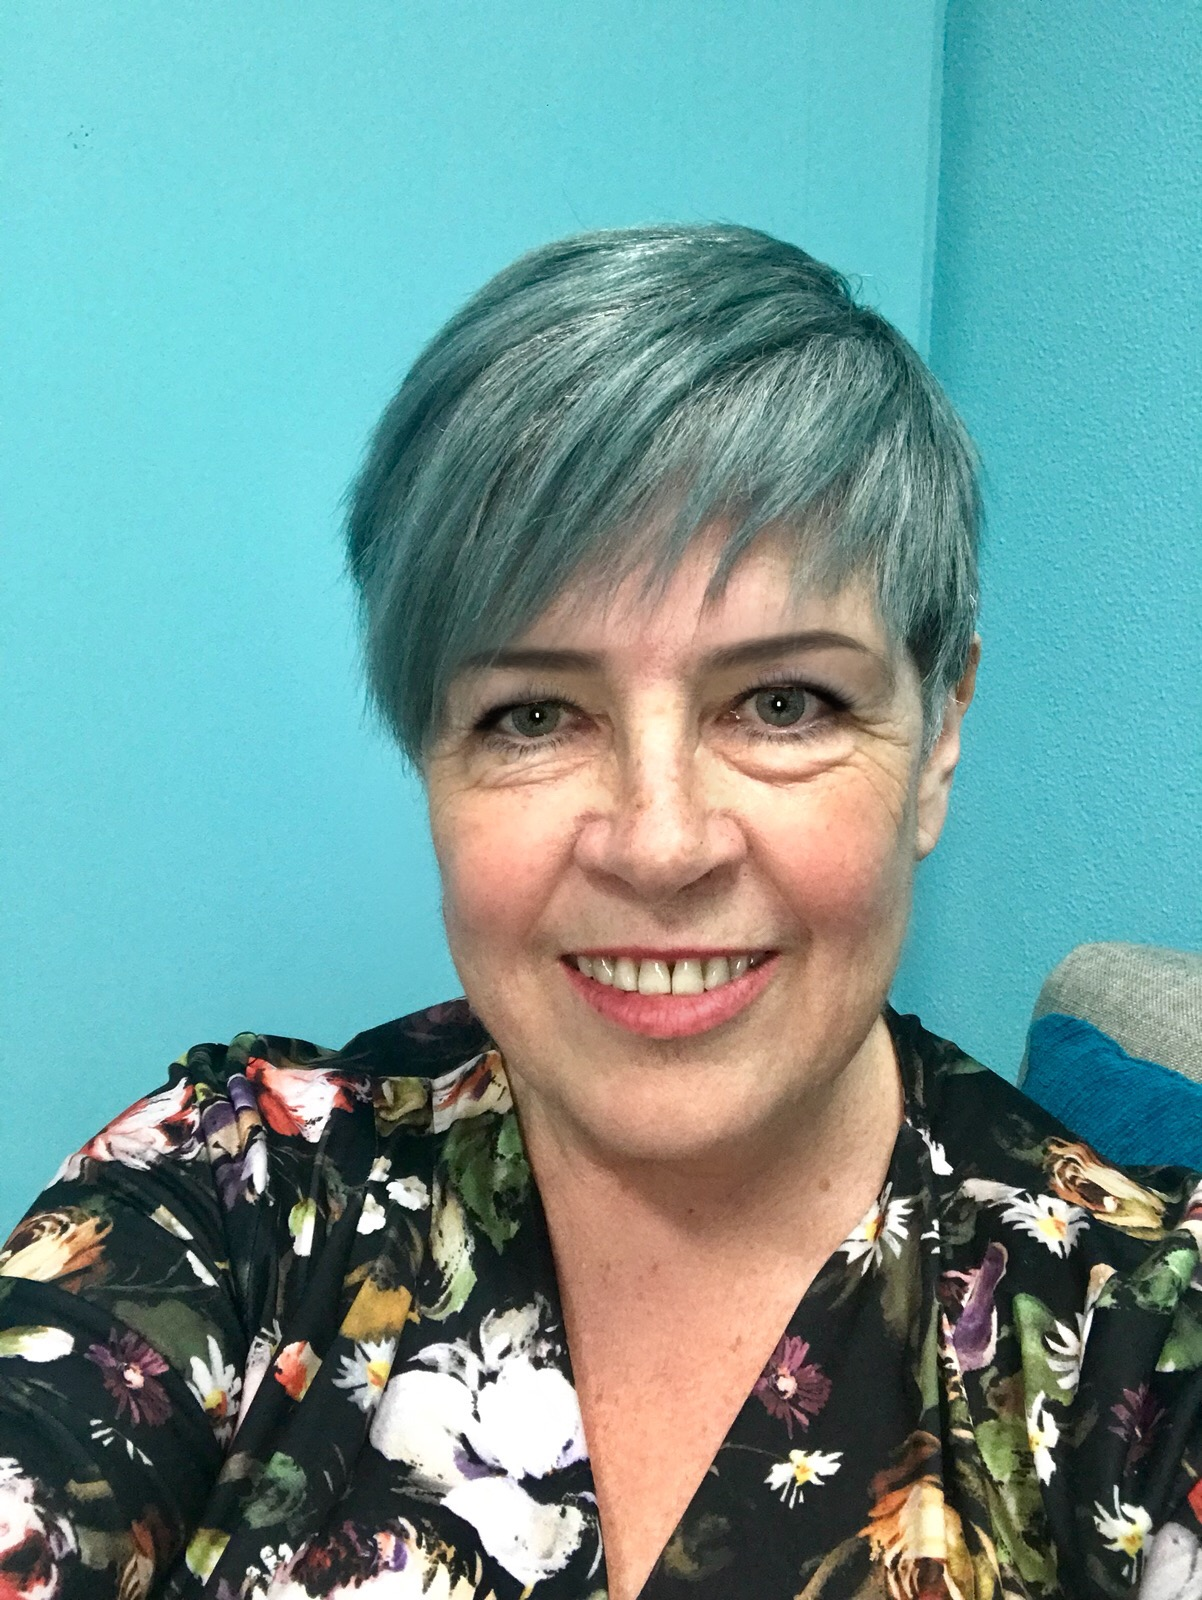 Cait Wotherspoon-Psychotherapist specializing in grief